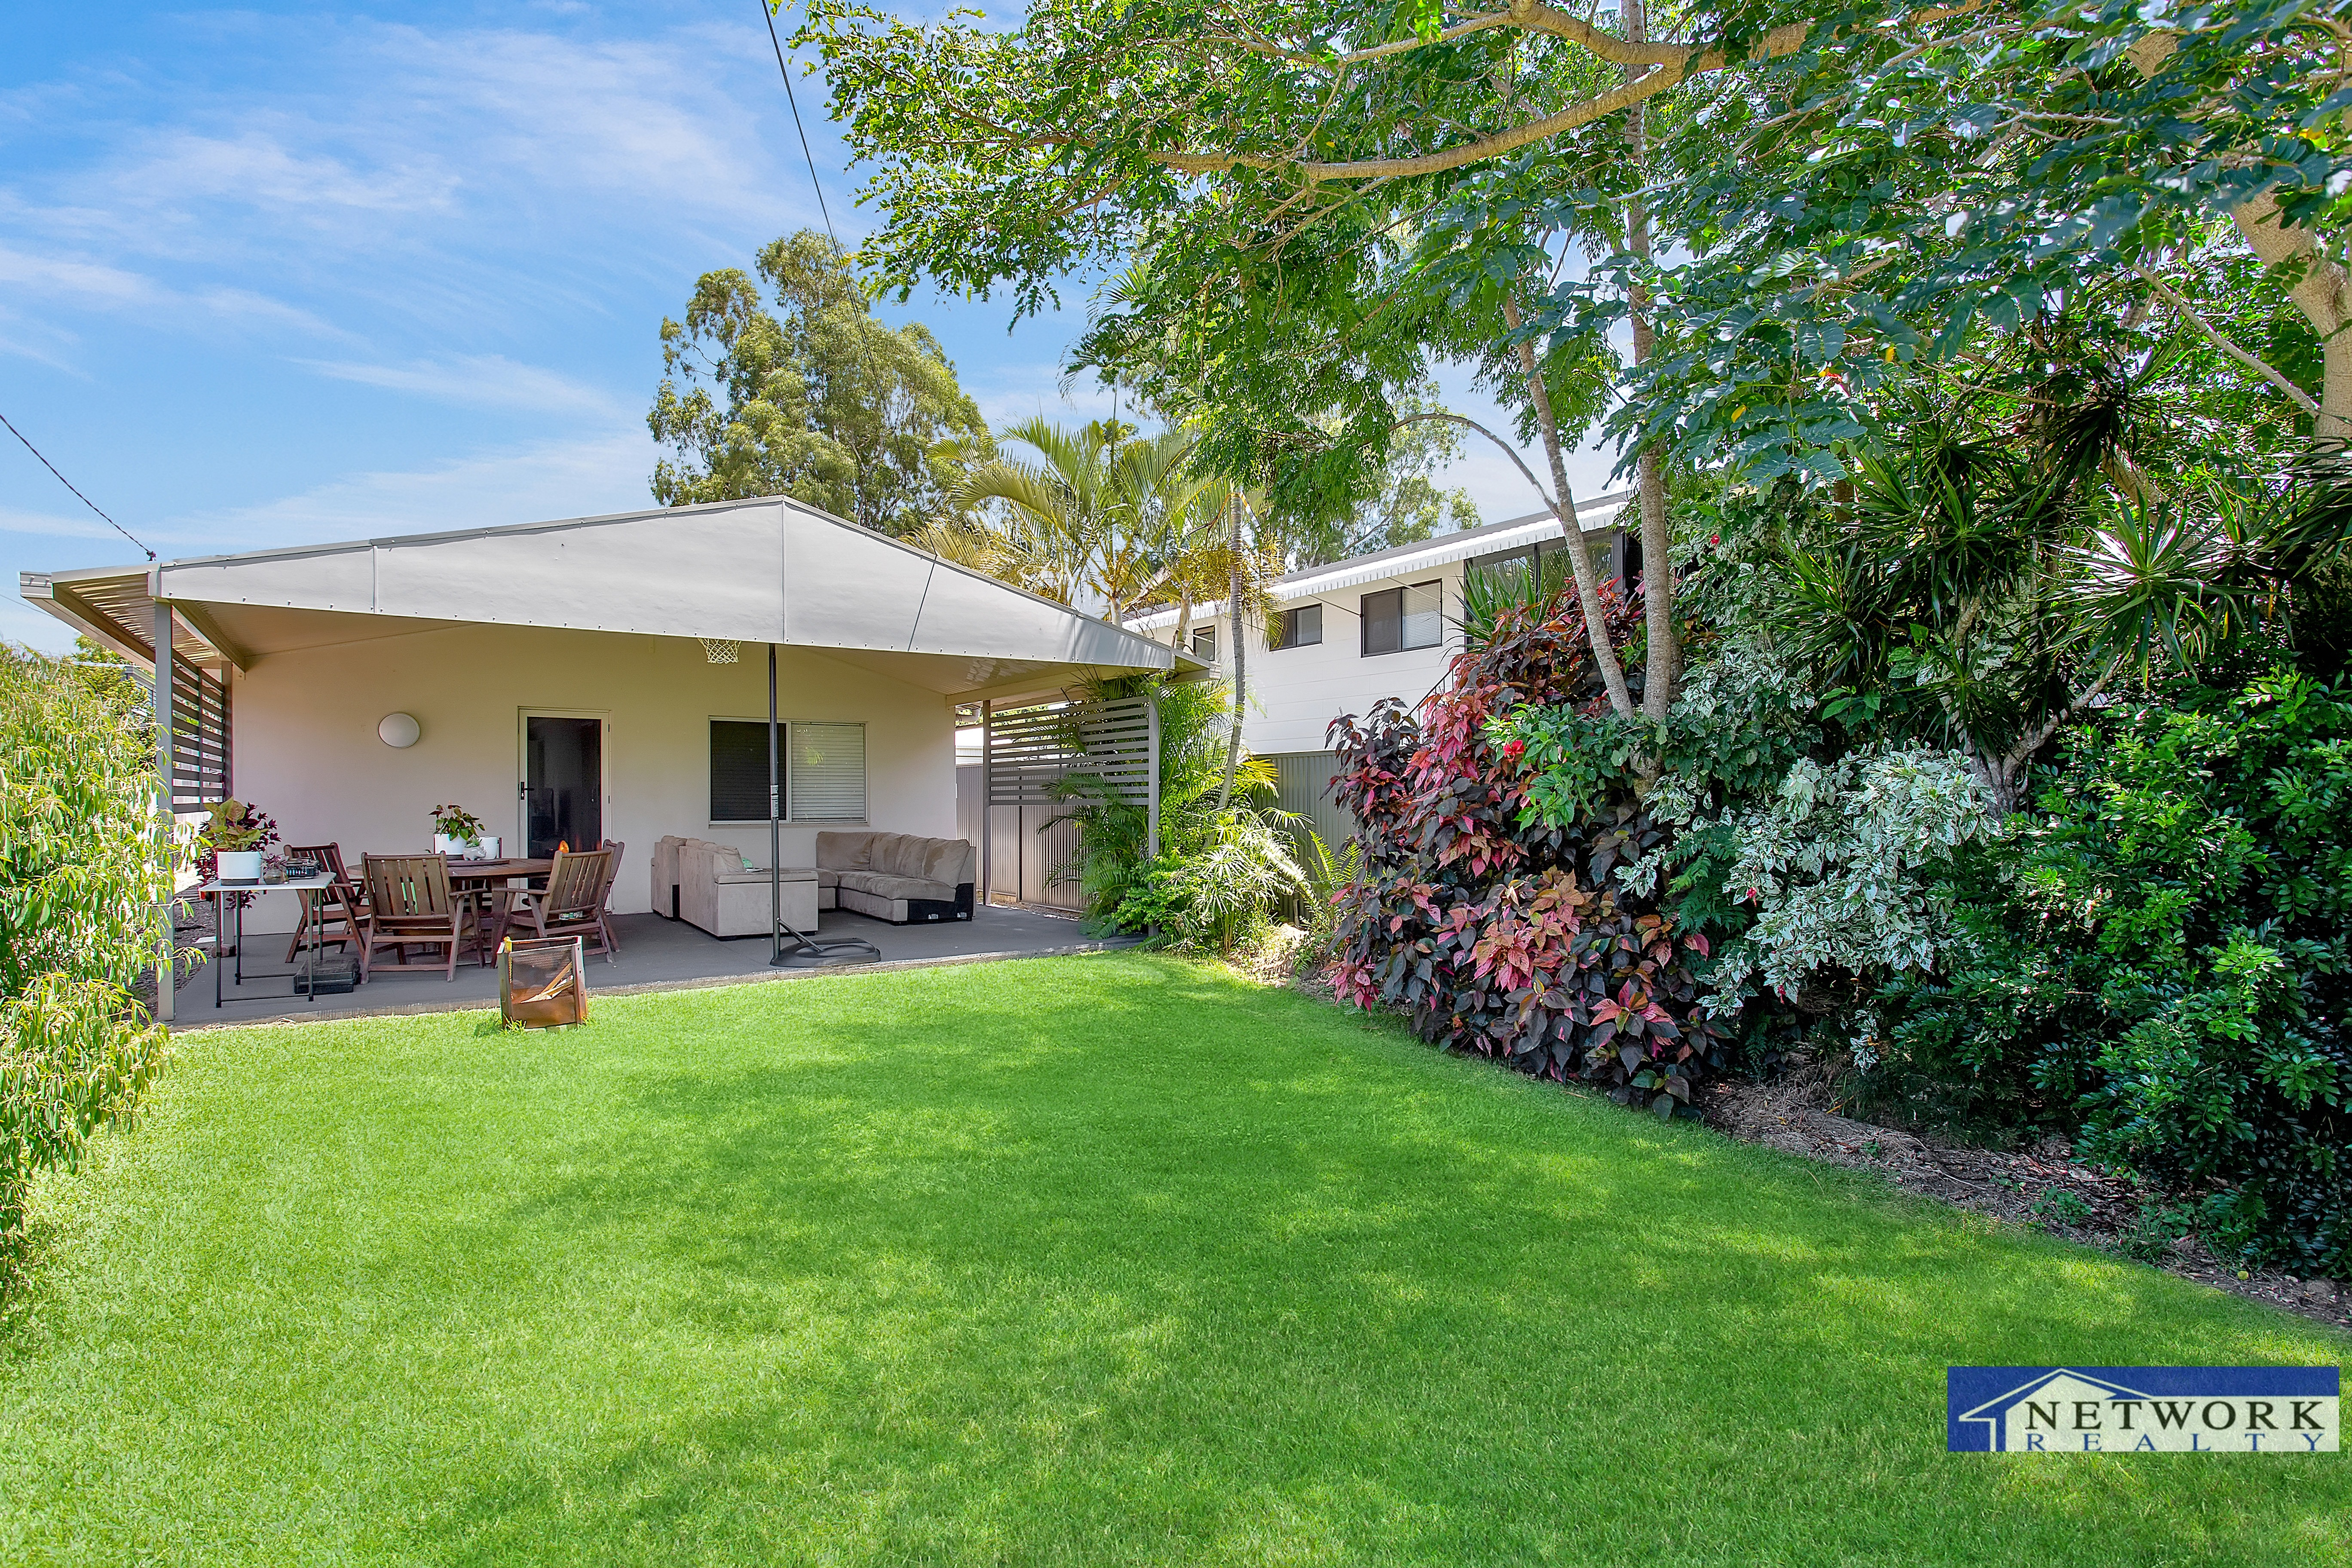 Ideal Starter Home or Investment – East of Bloomfield Street